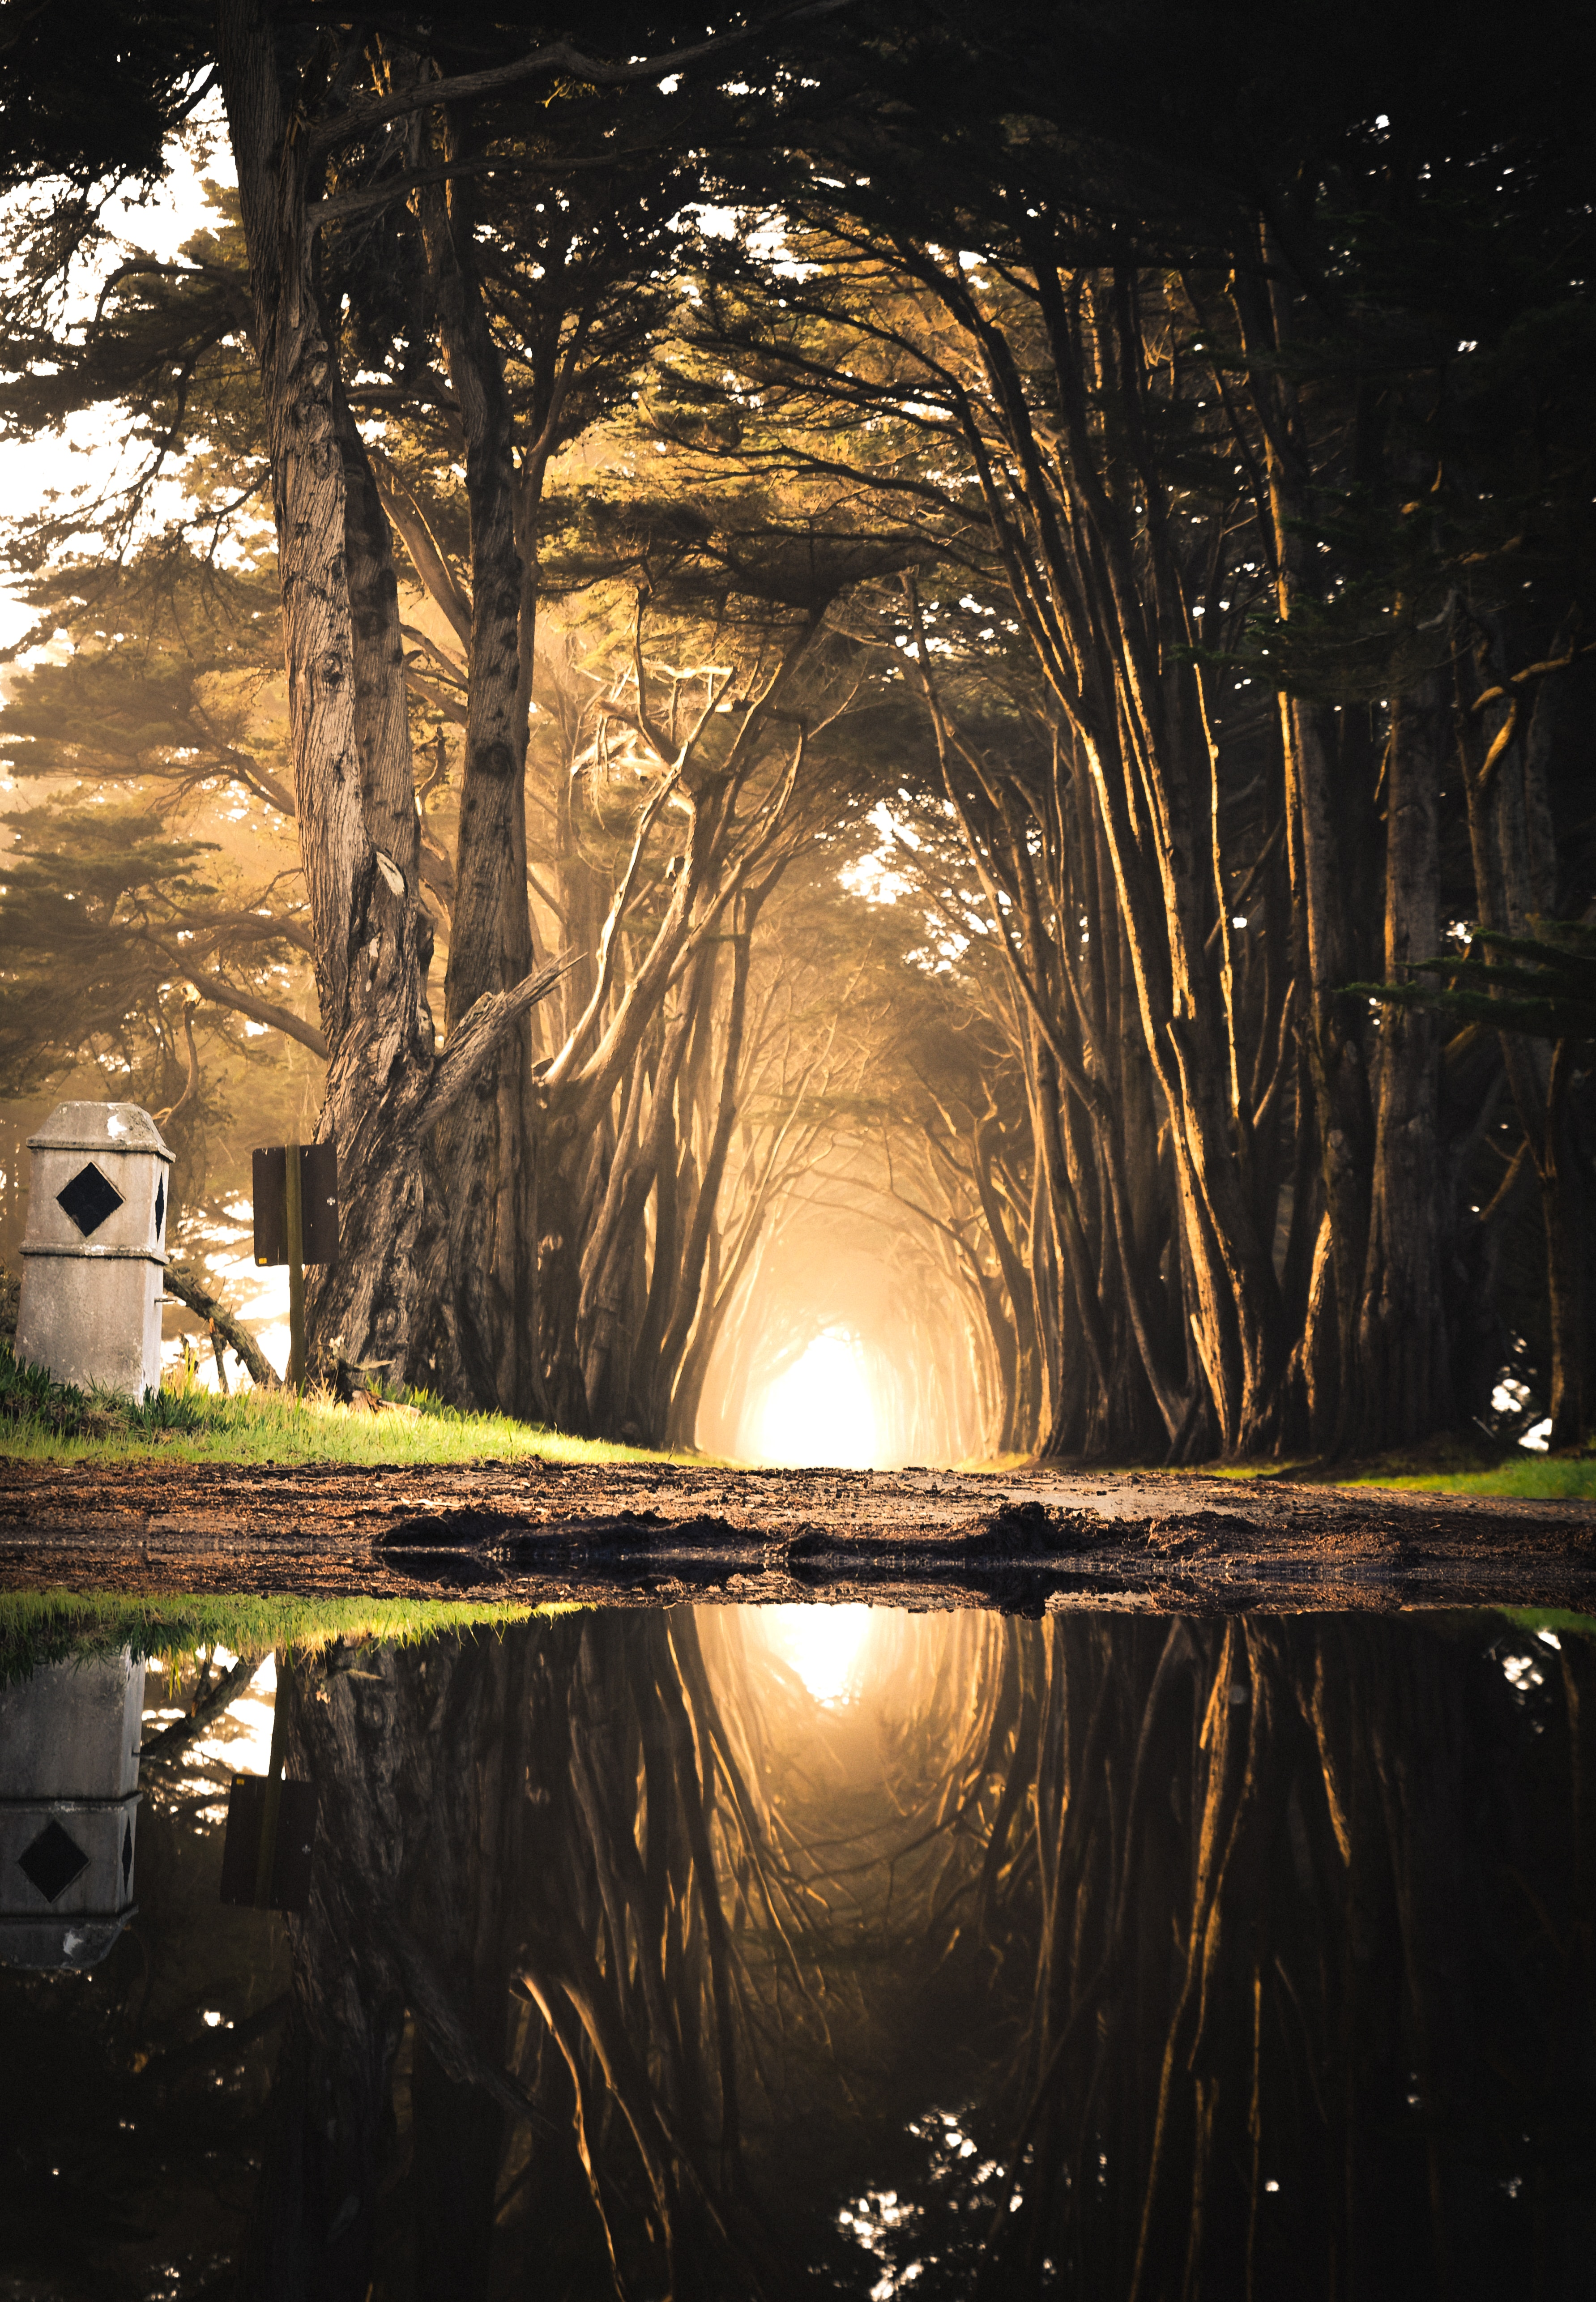 A tunnel of bright light is formed by a path between trees. It is a path that is travelled enough that we see the back of a road sign, and a gate to the left of the photo, but the sunshine reflects in a large puddle of water in the foreground.